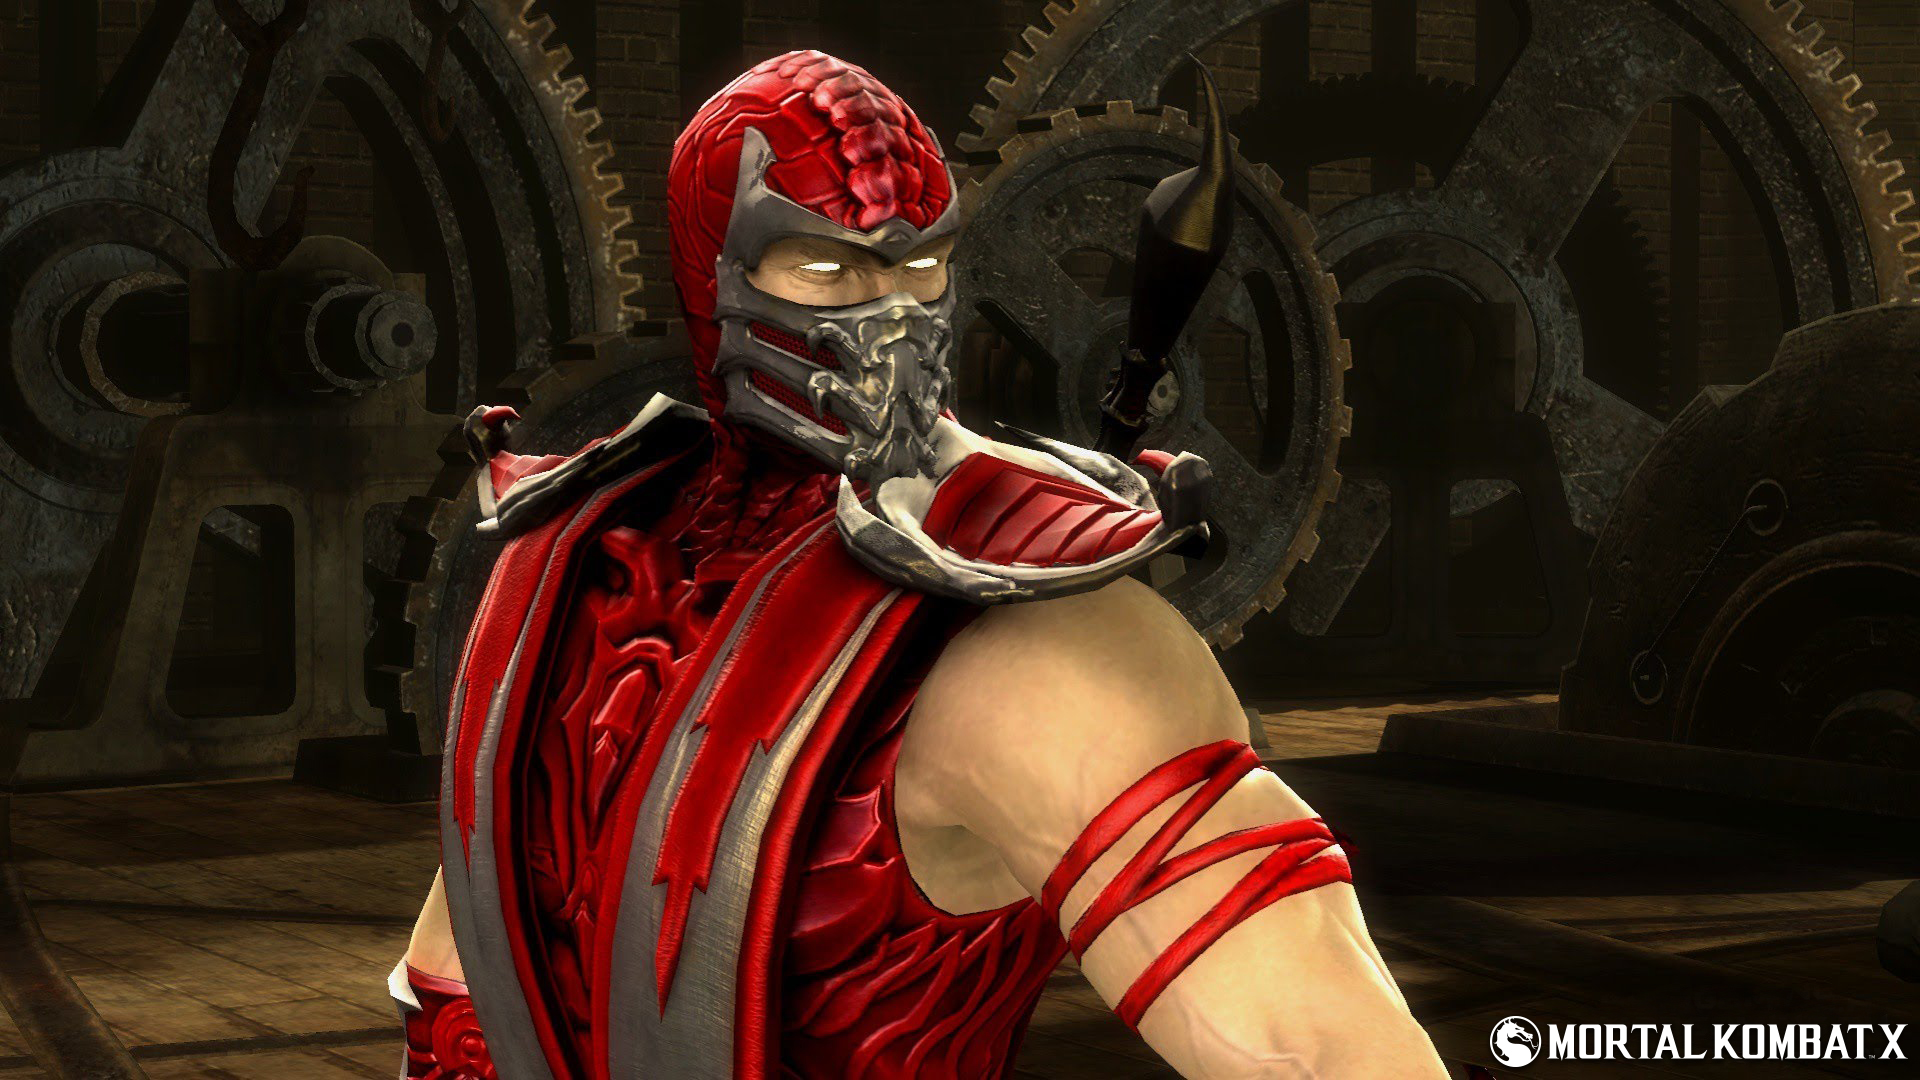 Images Of Scorpion From Mortal Kombat For Wallpaper: Red Skin Scorpion Mortal Kombat Costume Picture